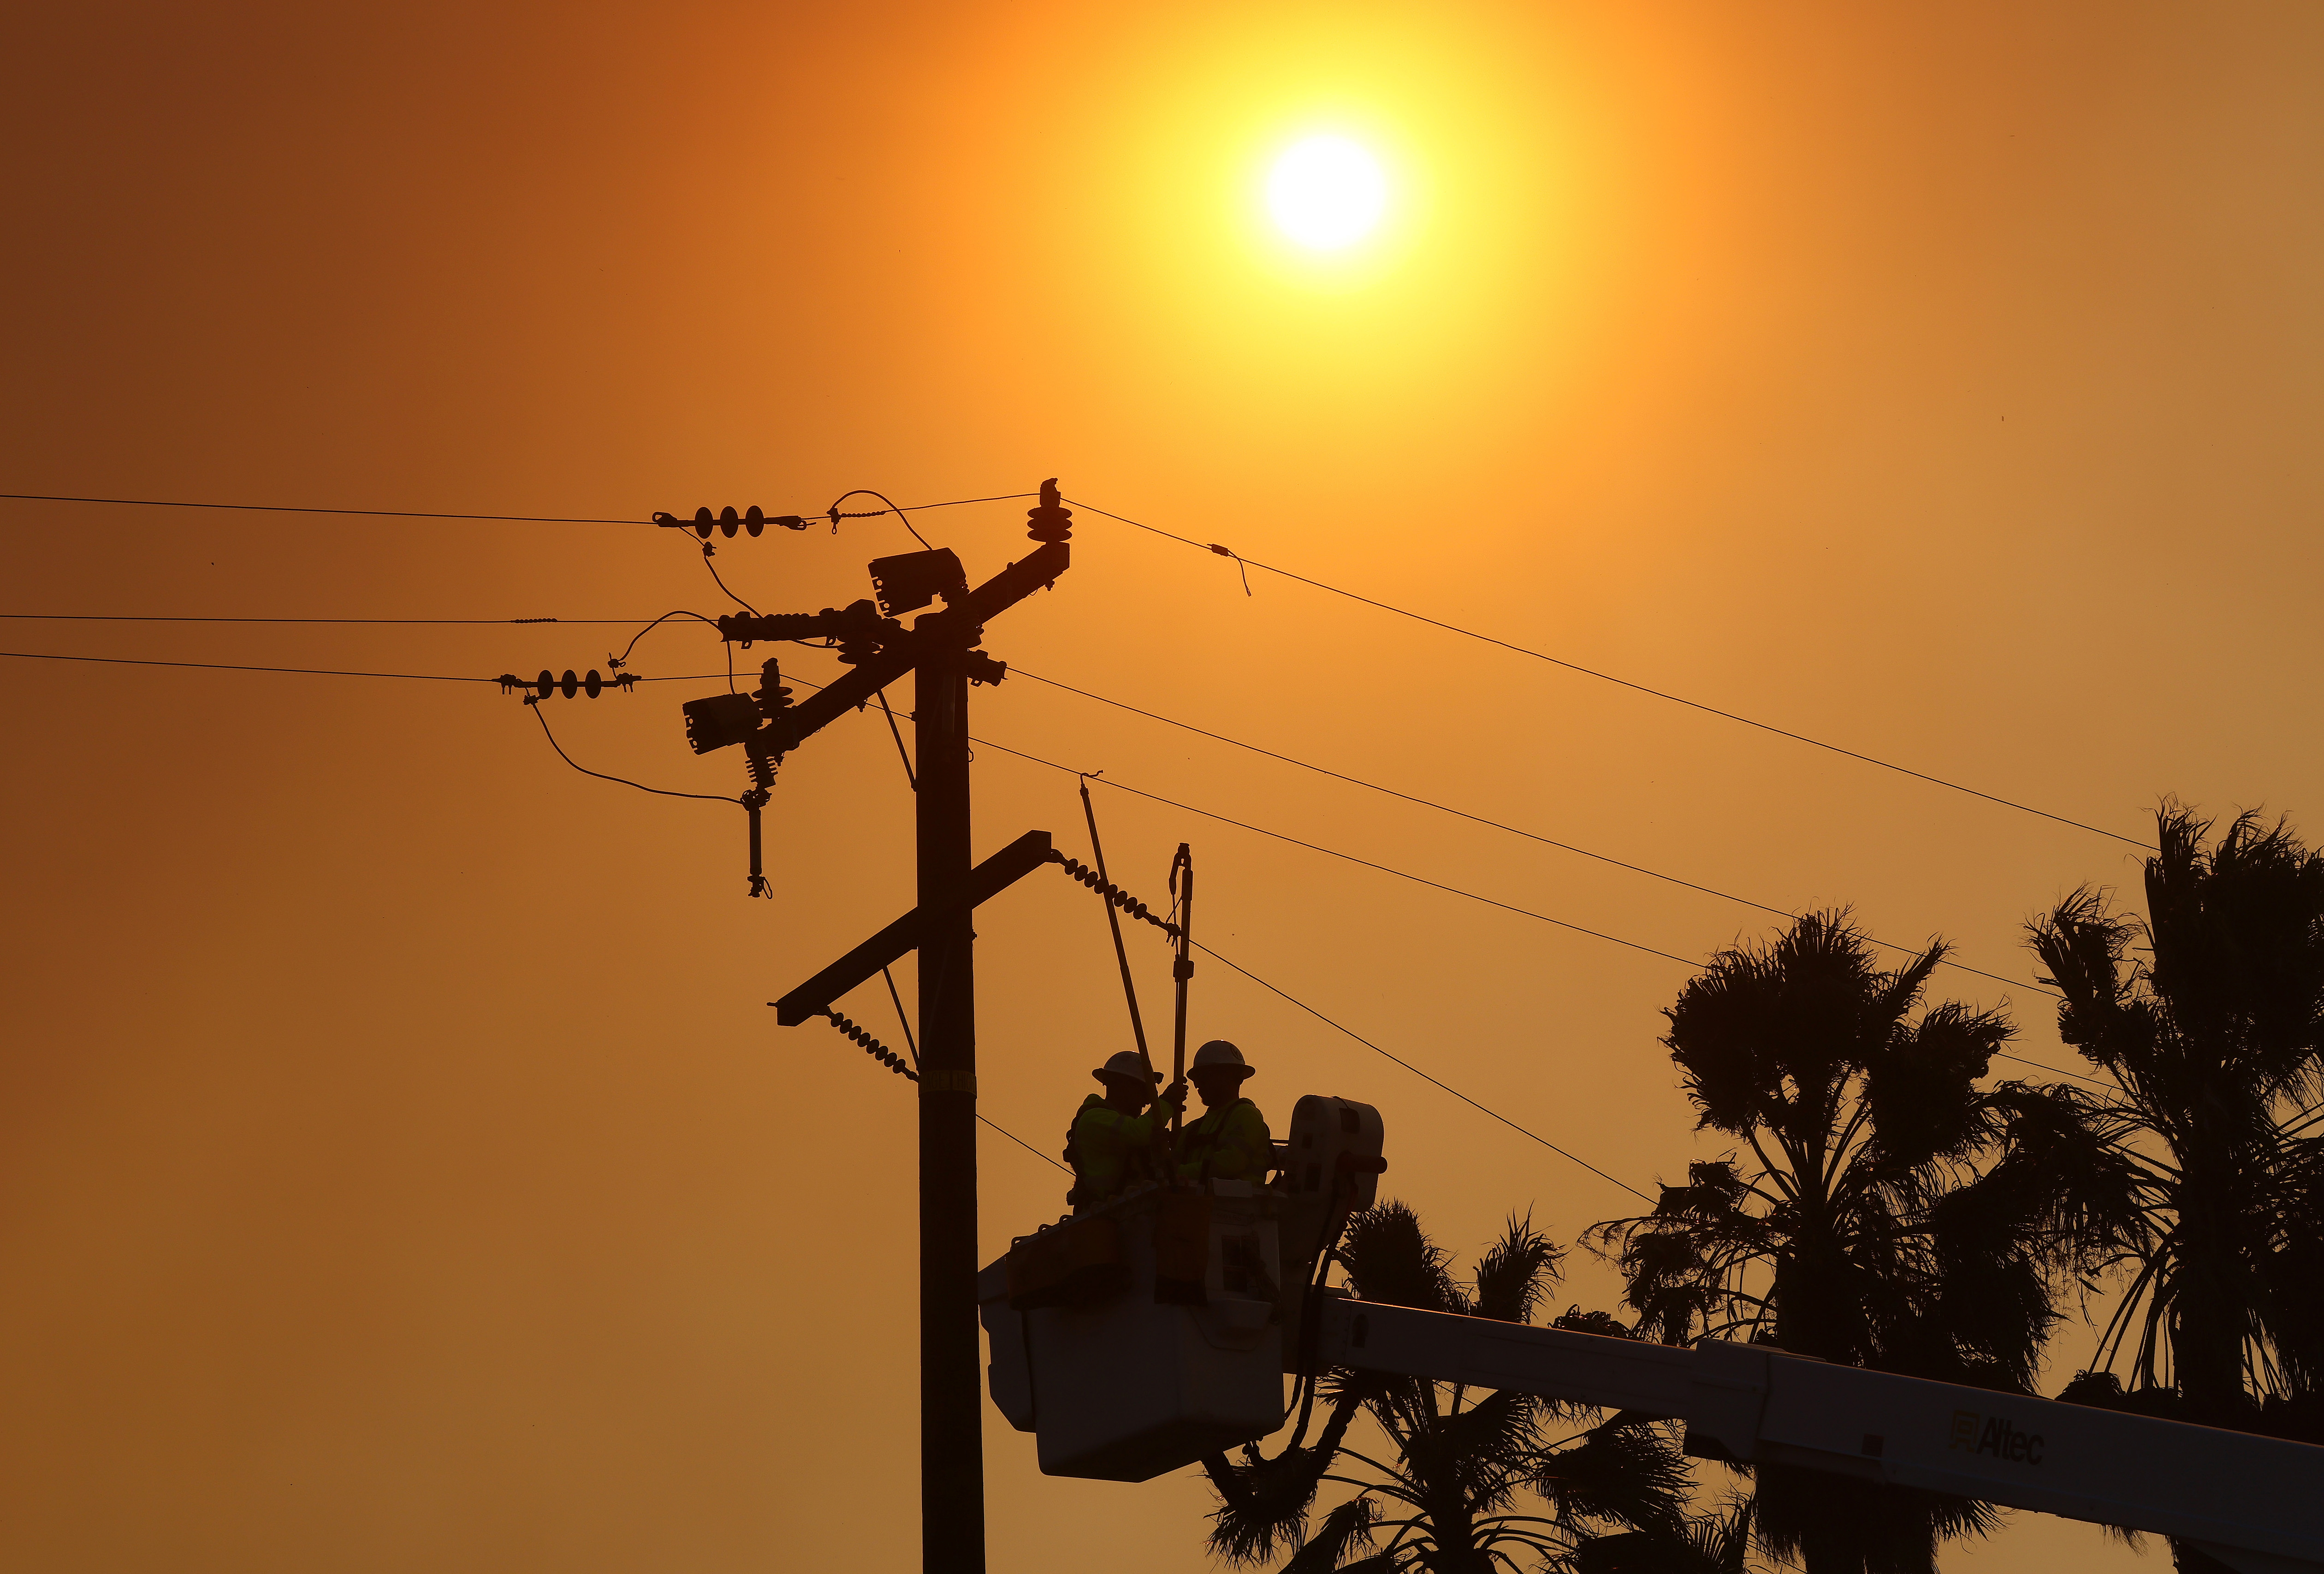 Workers in a cherry-picker basket approach a power pole while a bright sun glares overhead.